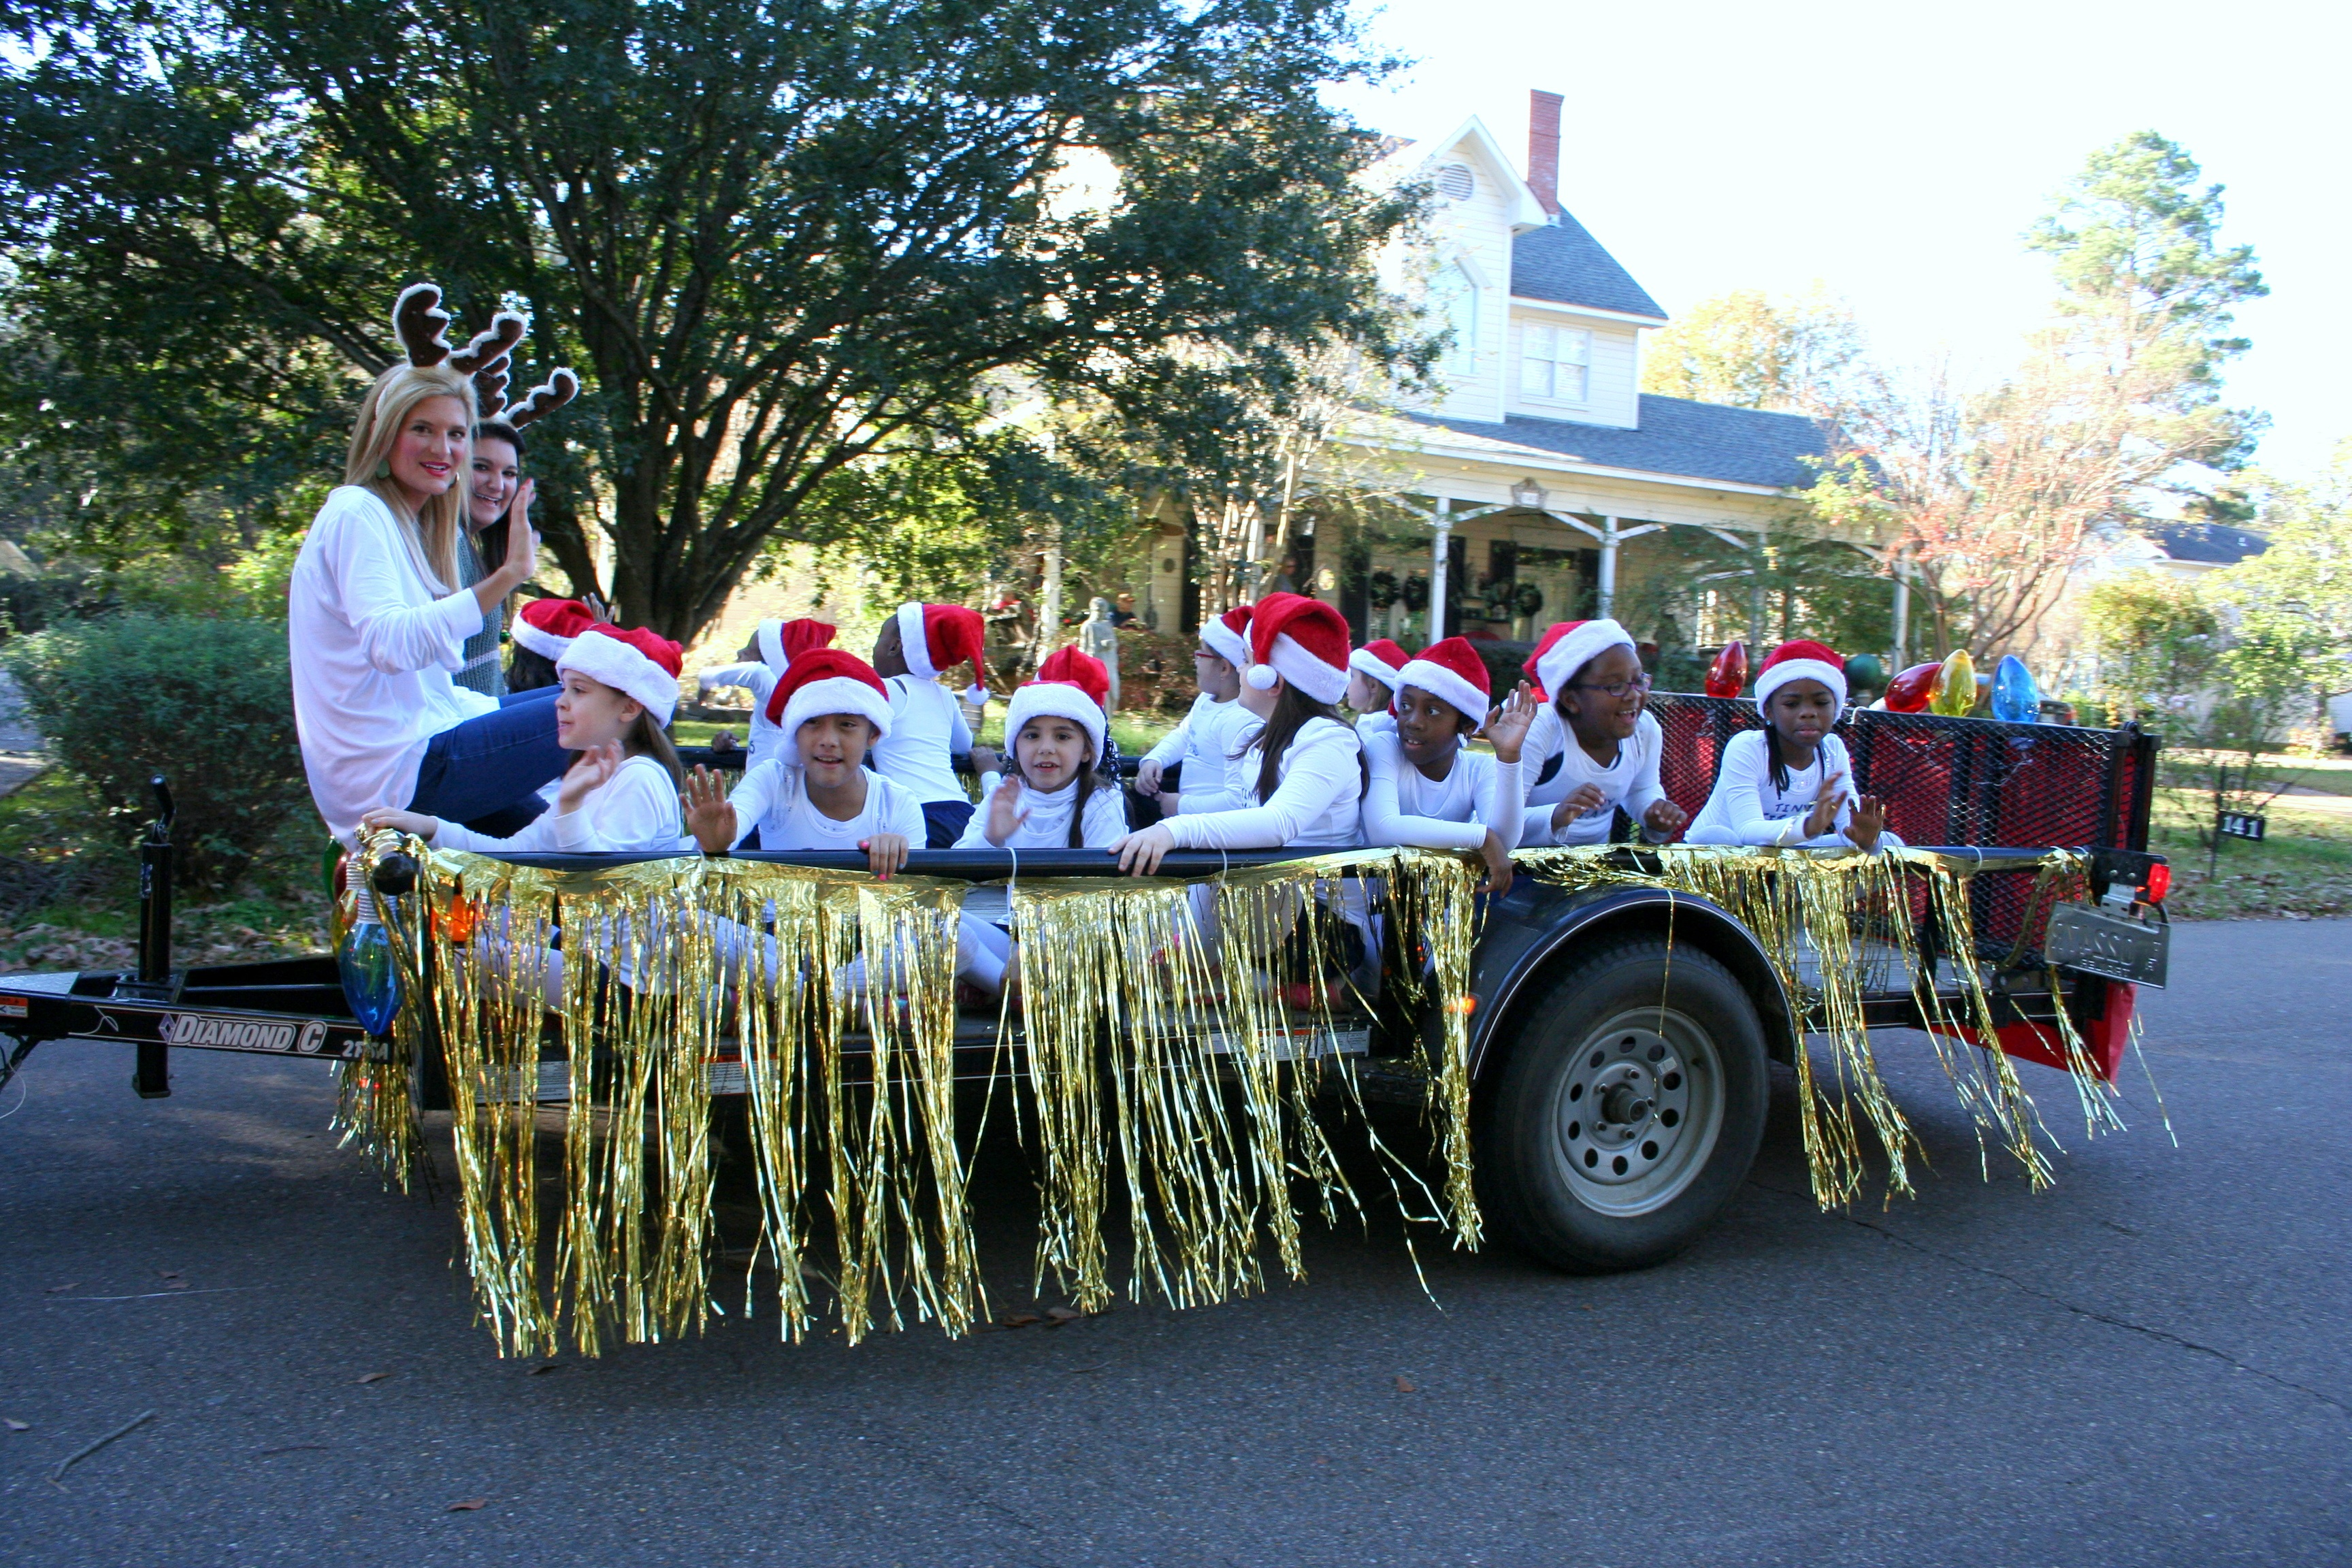 Jackson Christmas Parade 2020 City Of Jackson Christmas Parade 2020 | Ysnhca.newyear2020.site